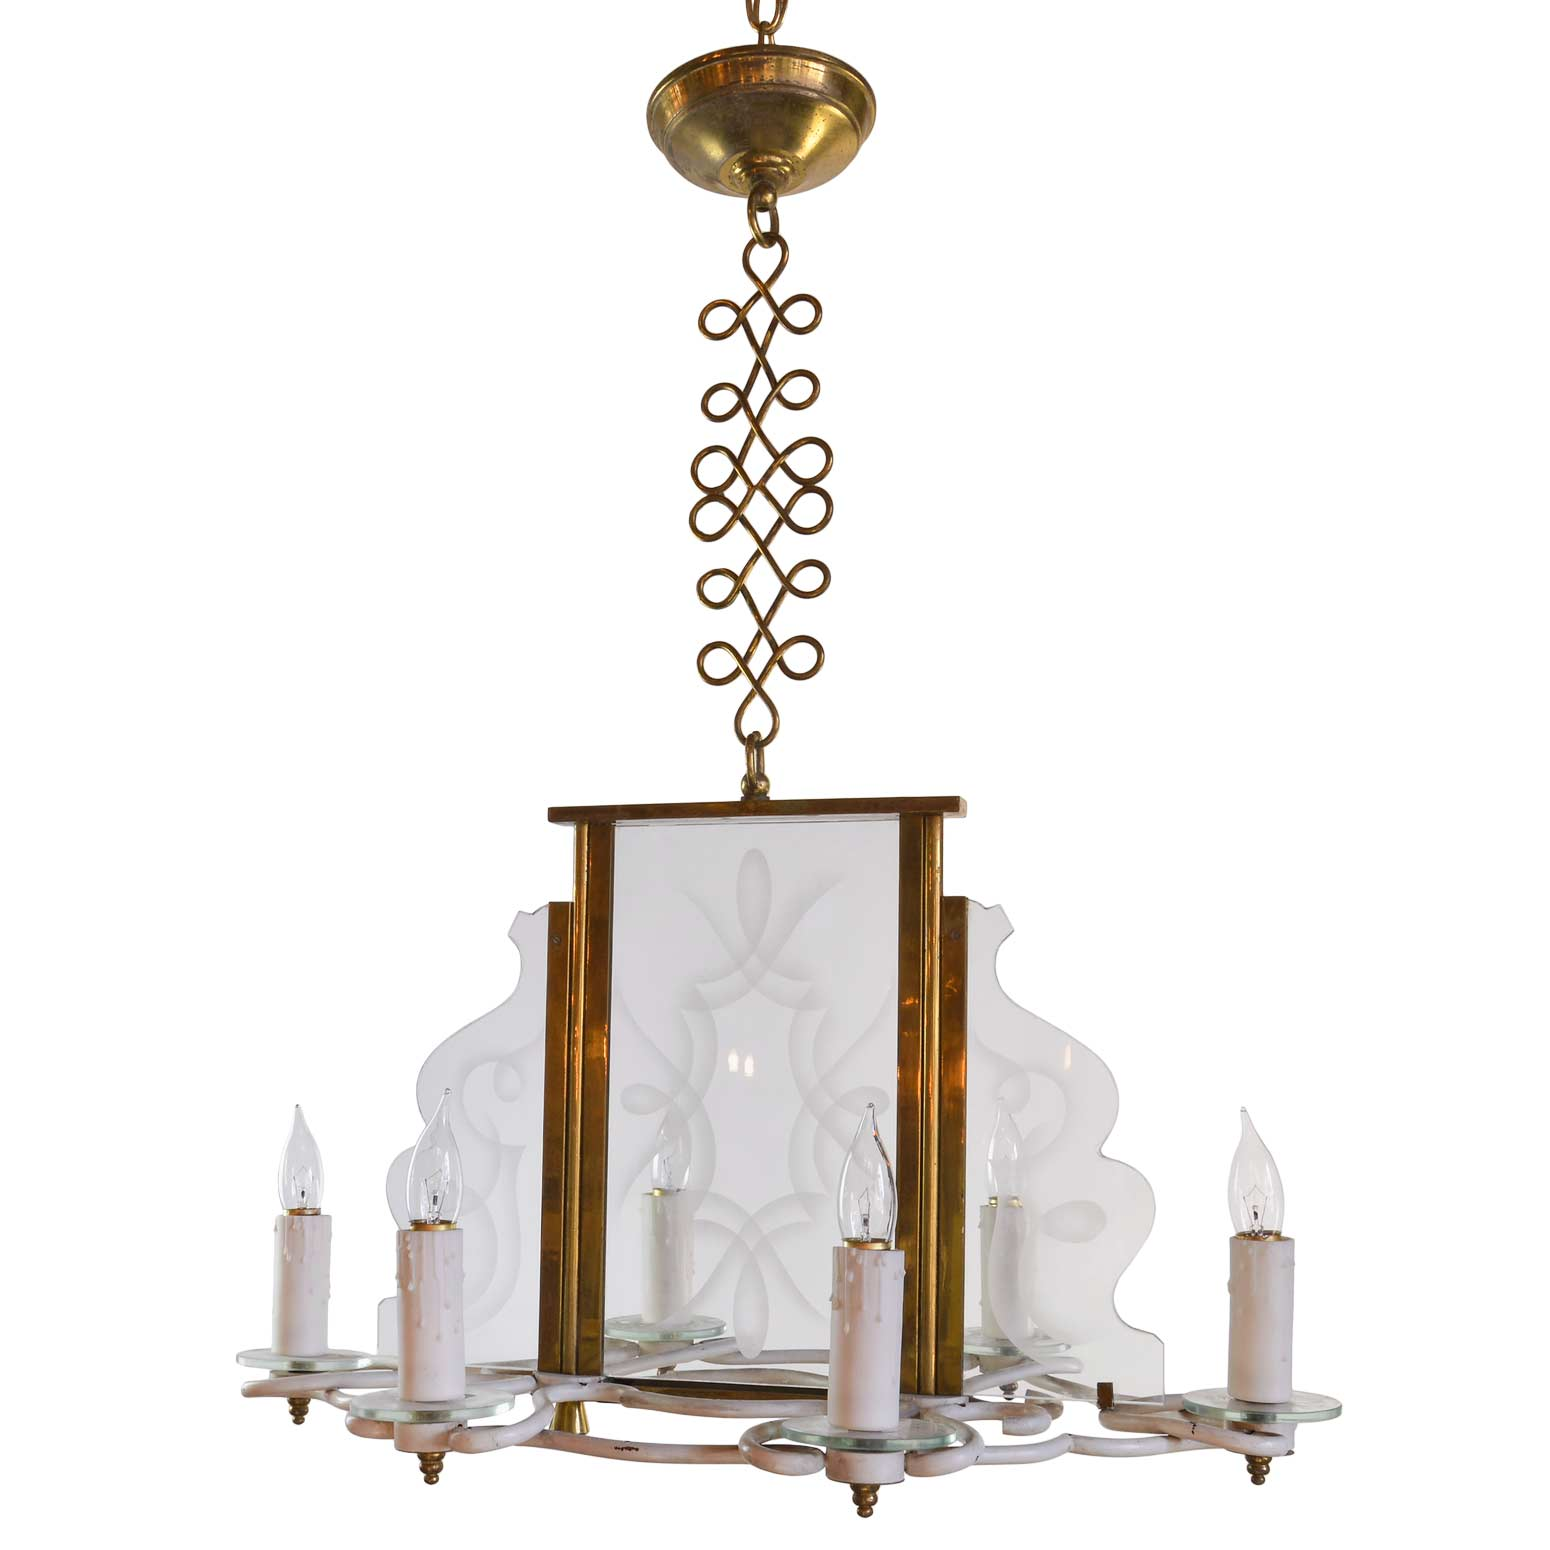 60's etched glass chandelier